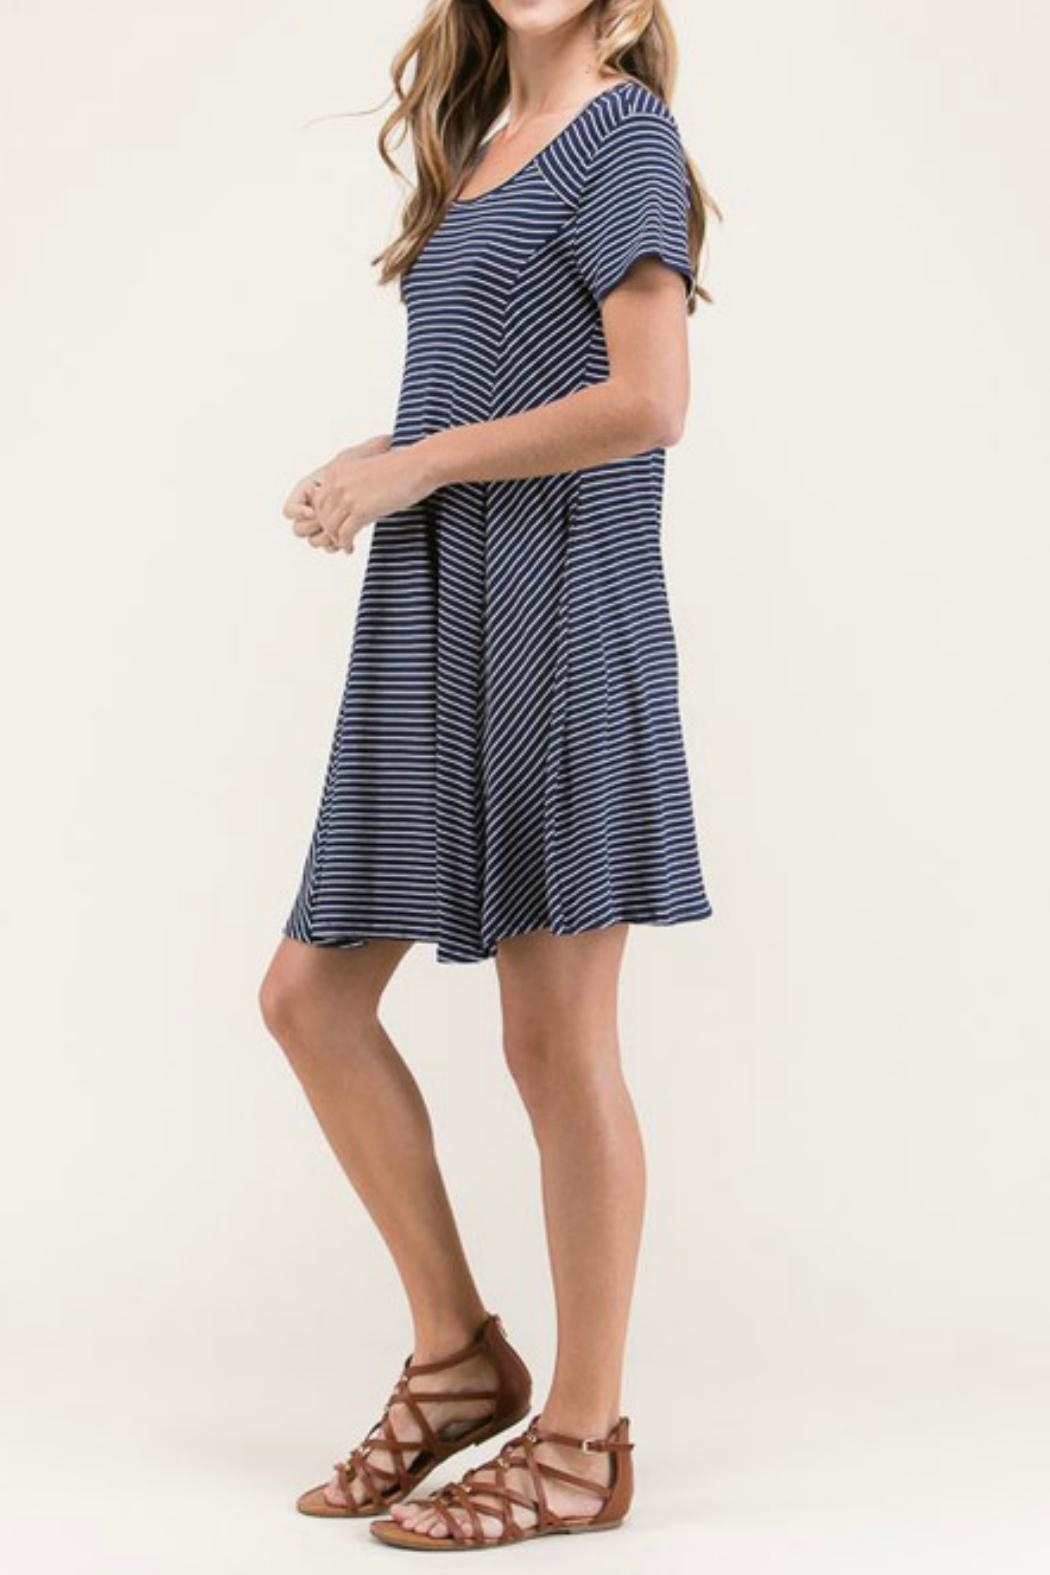 Lime n Chili Navy Stripe Dress - Main Image